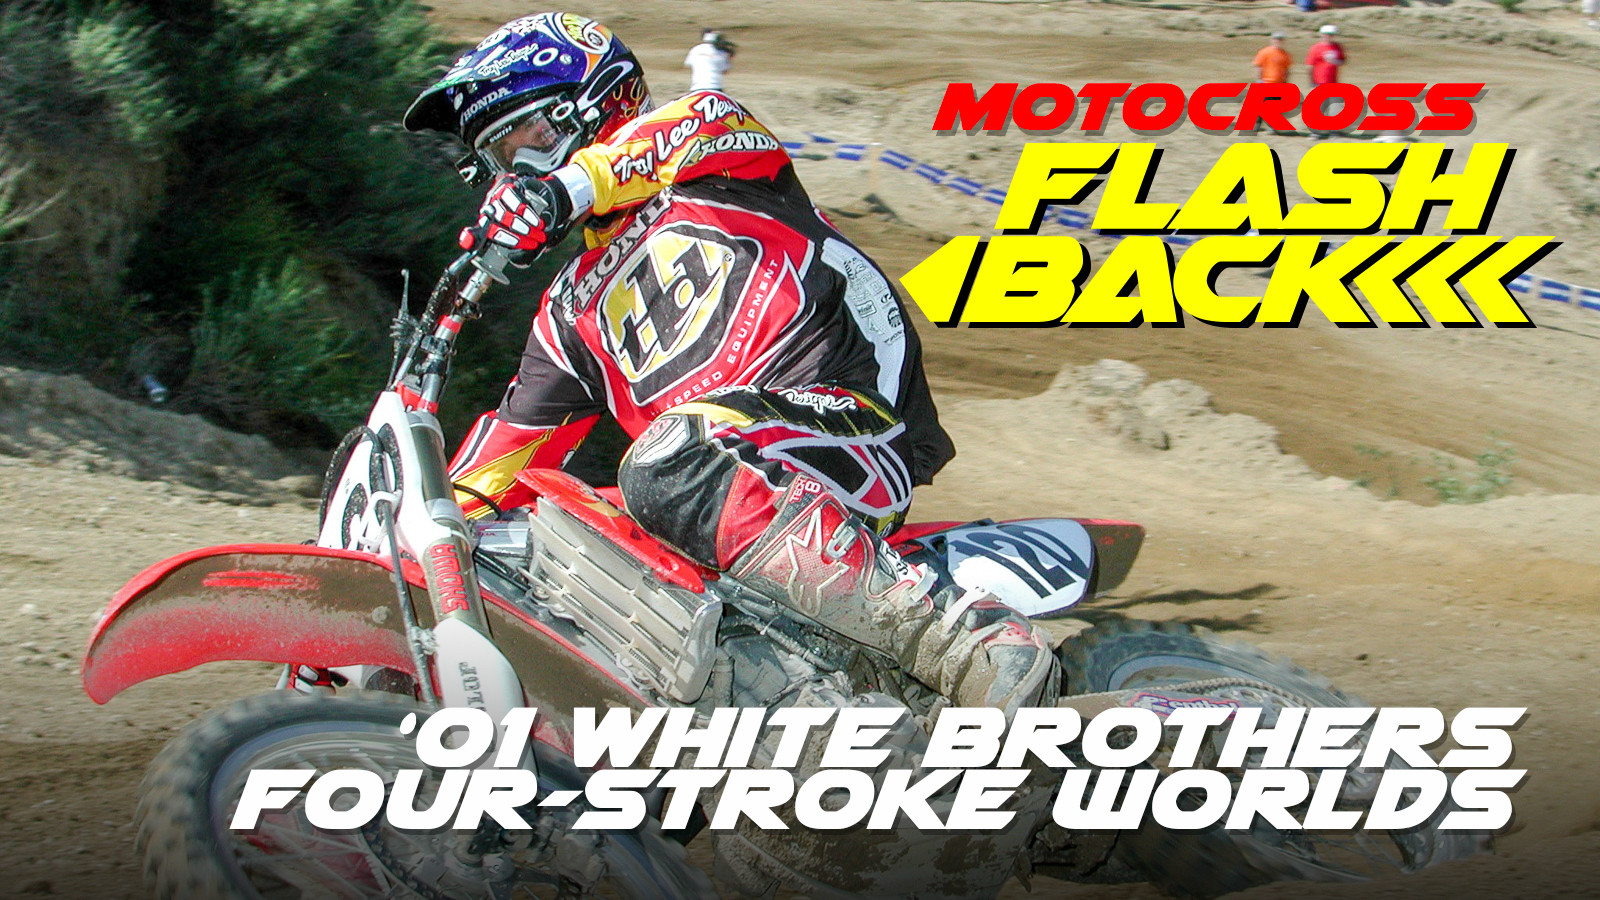 Motocross Flashback: 2001 White Brothers Four-Stroke Worlds